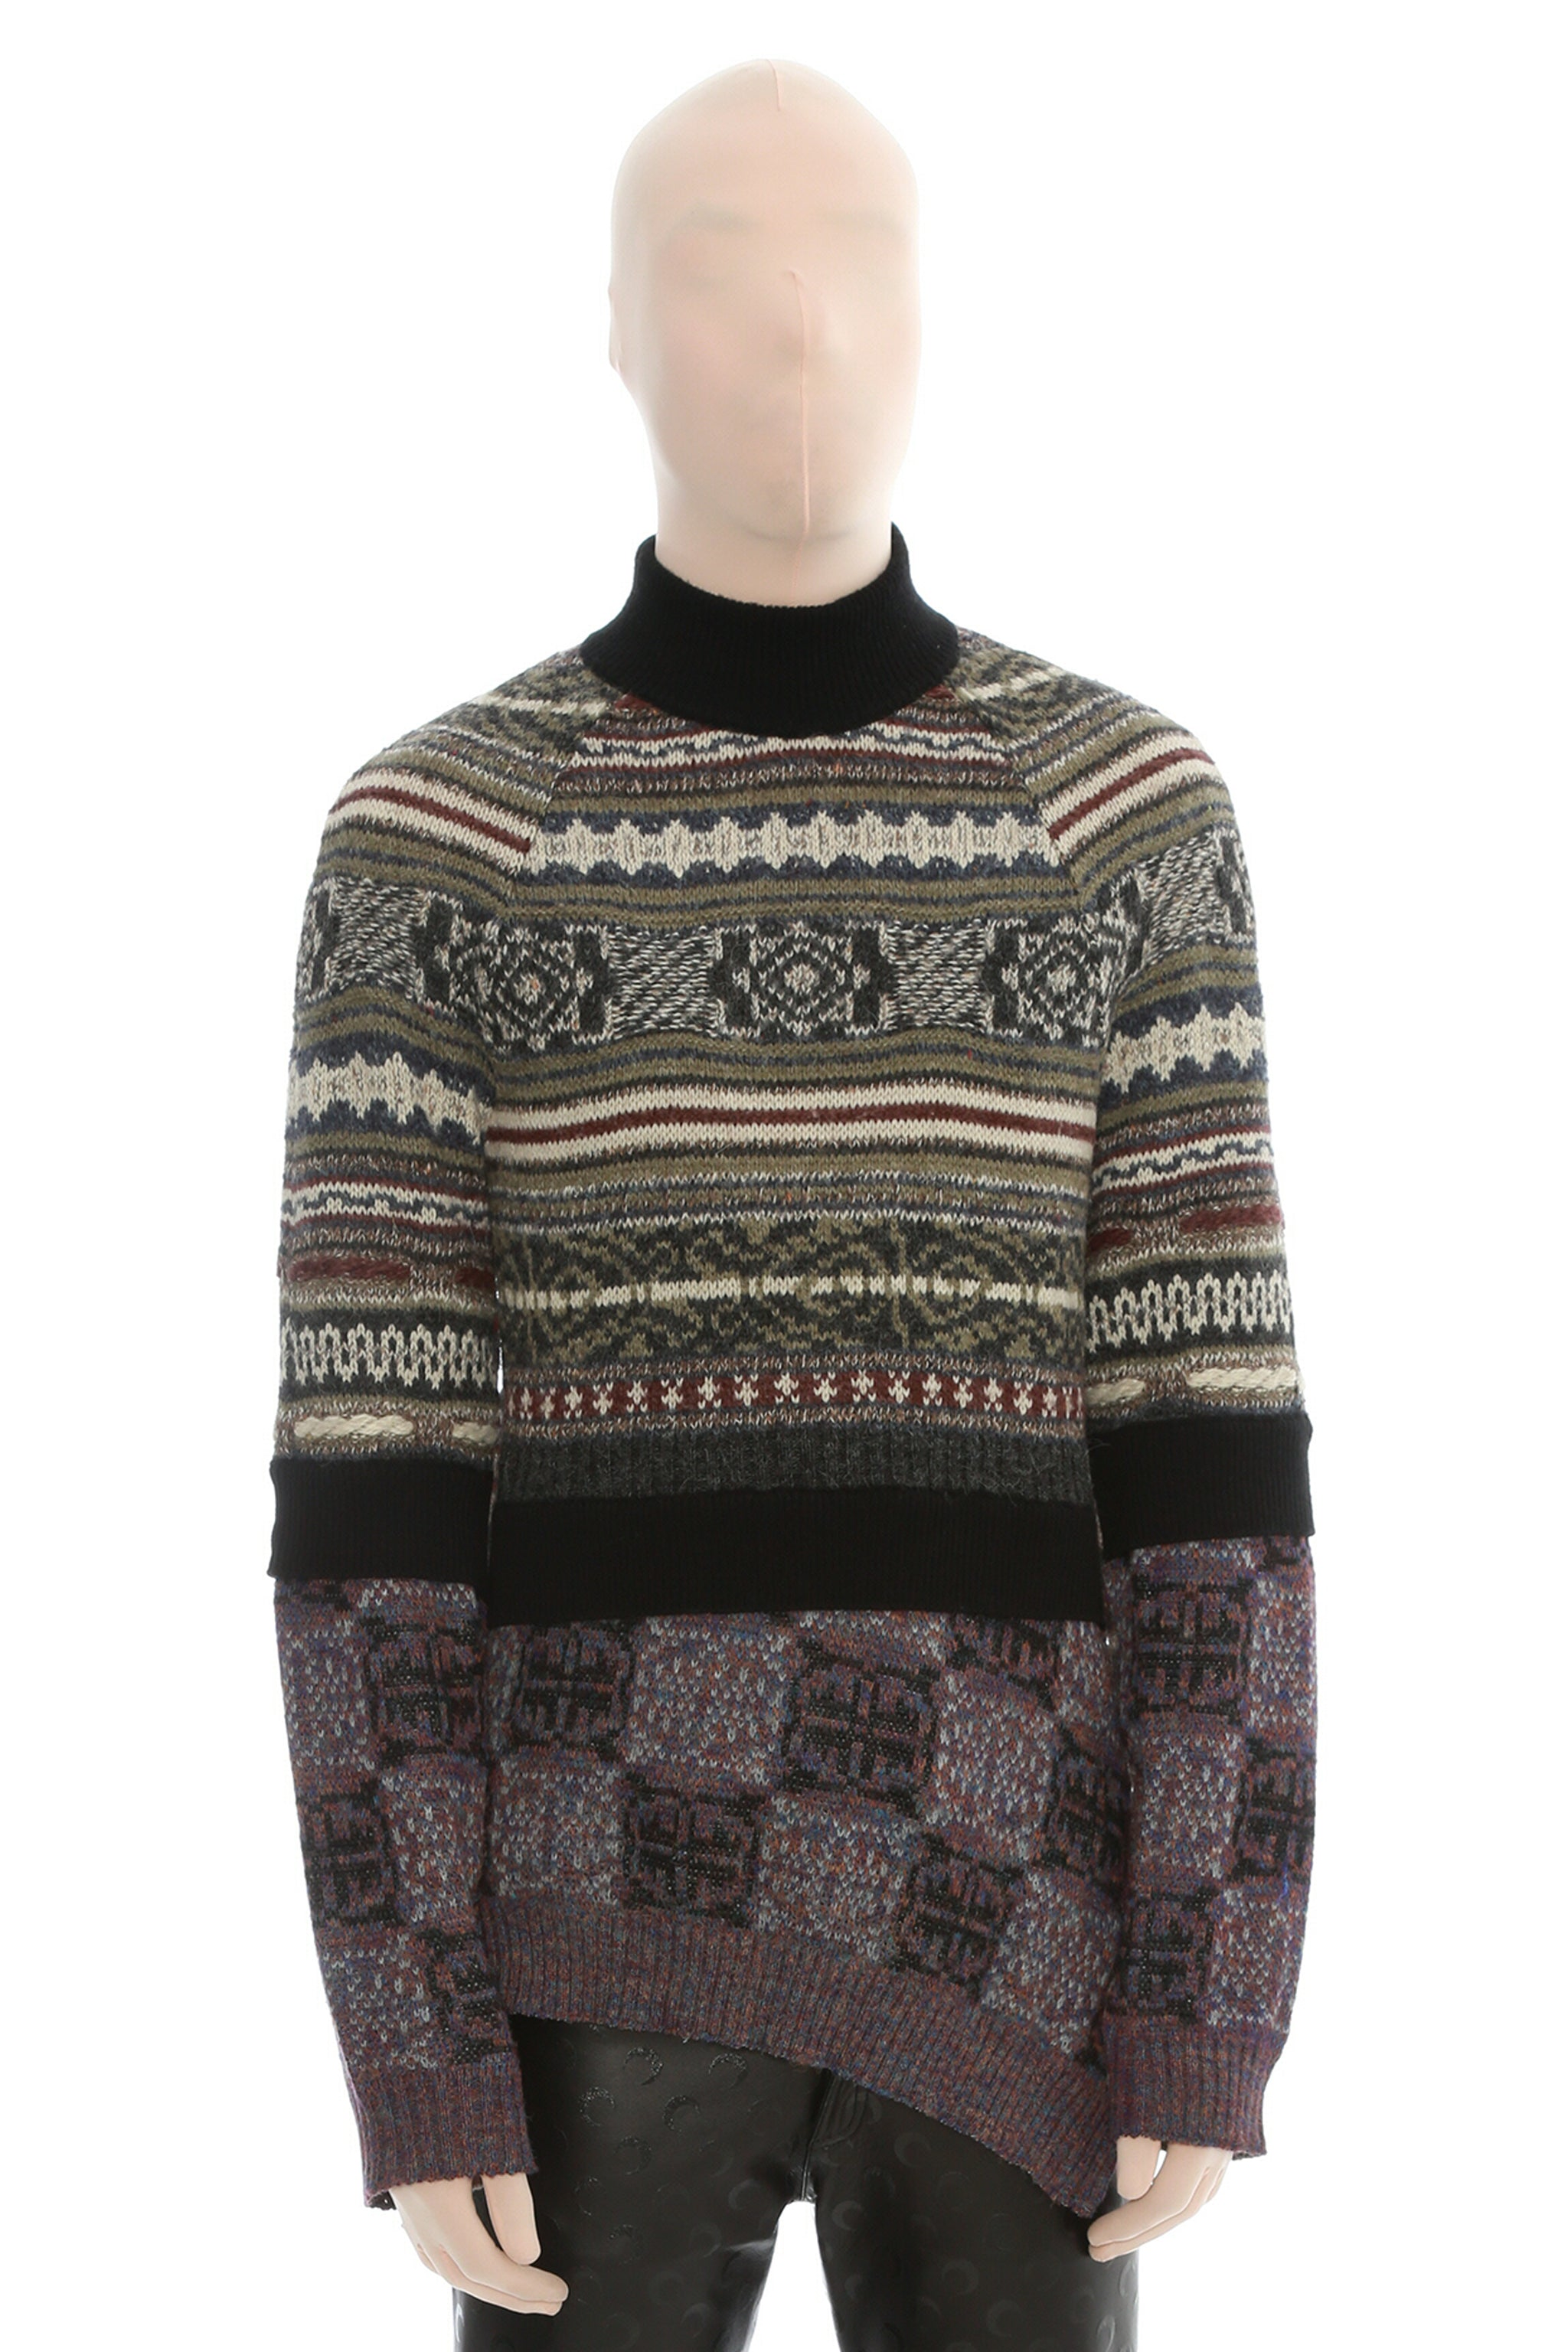 Regenerated Knit Melange Jumper